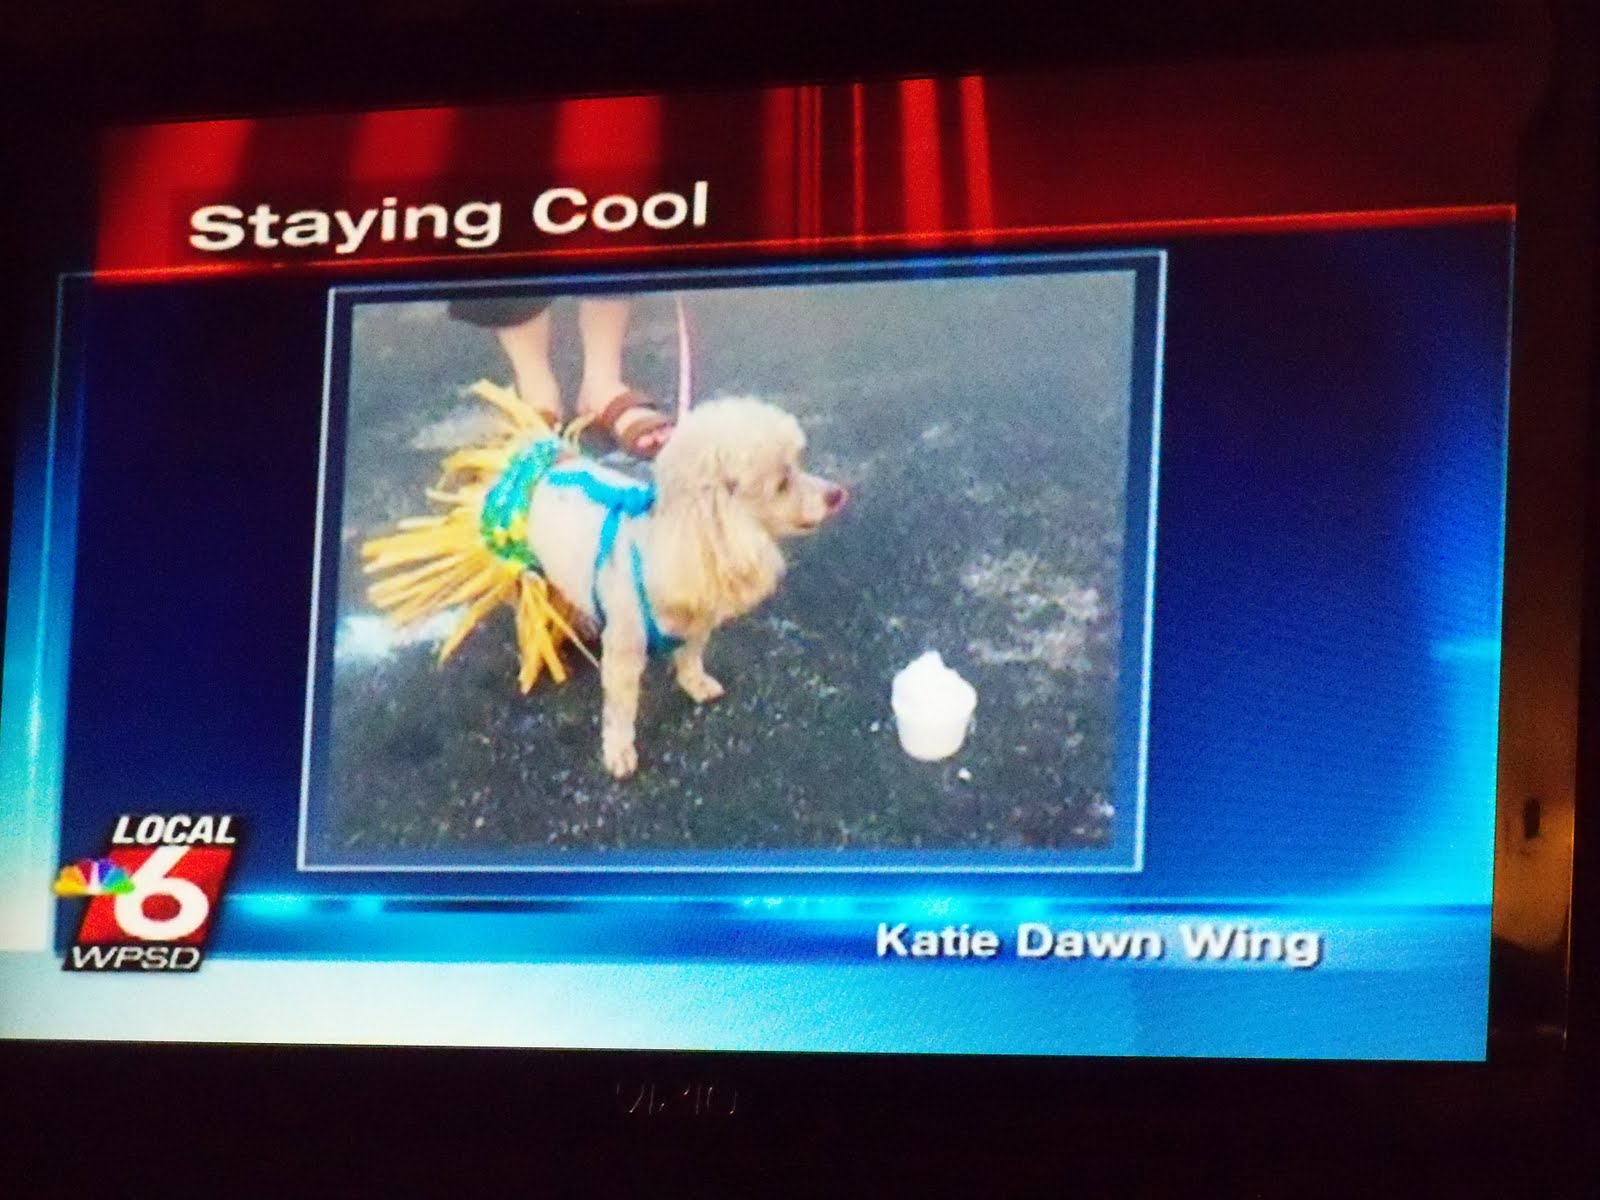 Dog Eared: Mollie Jo goes to WPSD Local 6